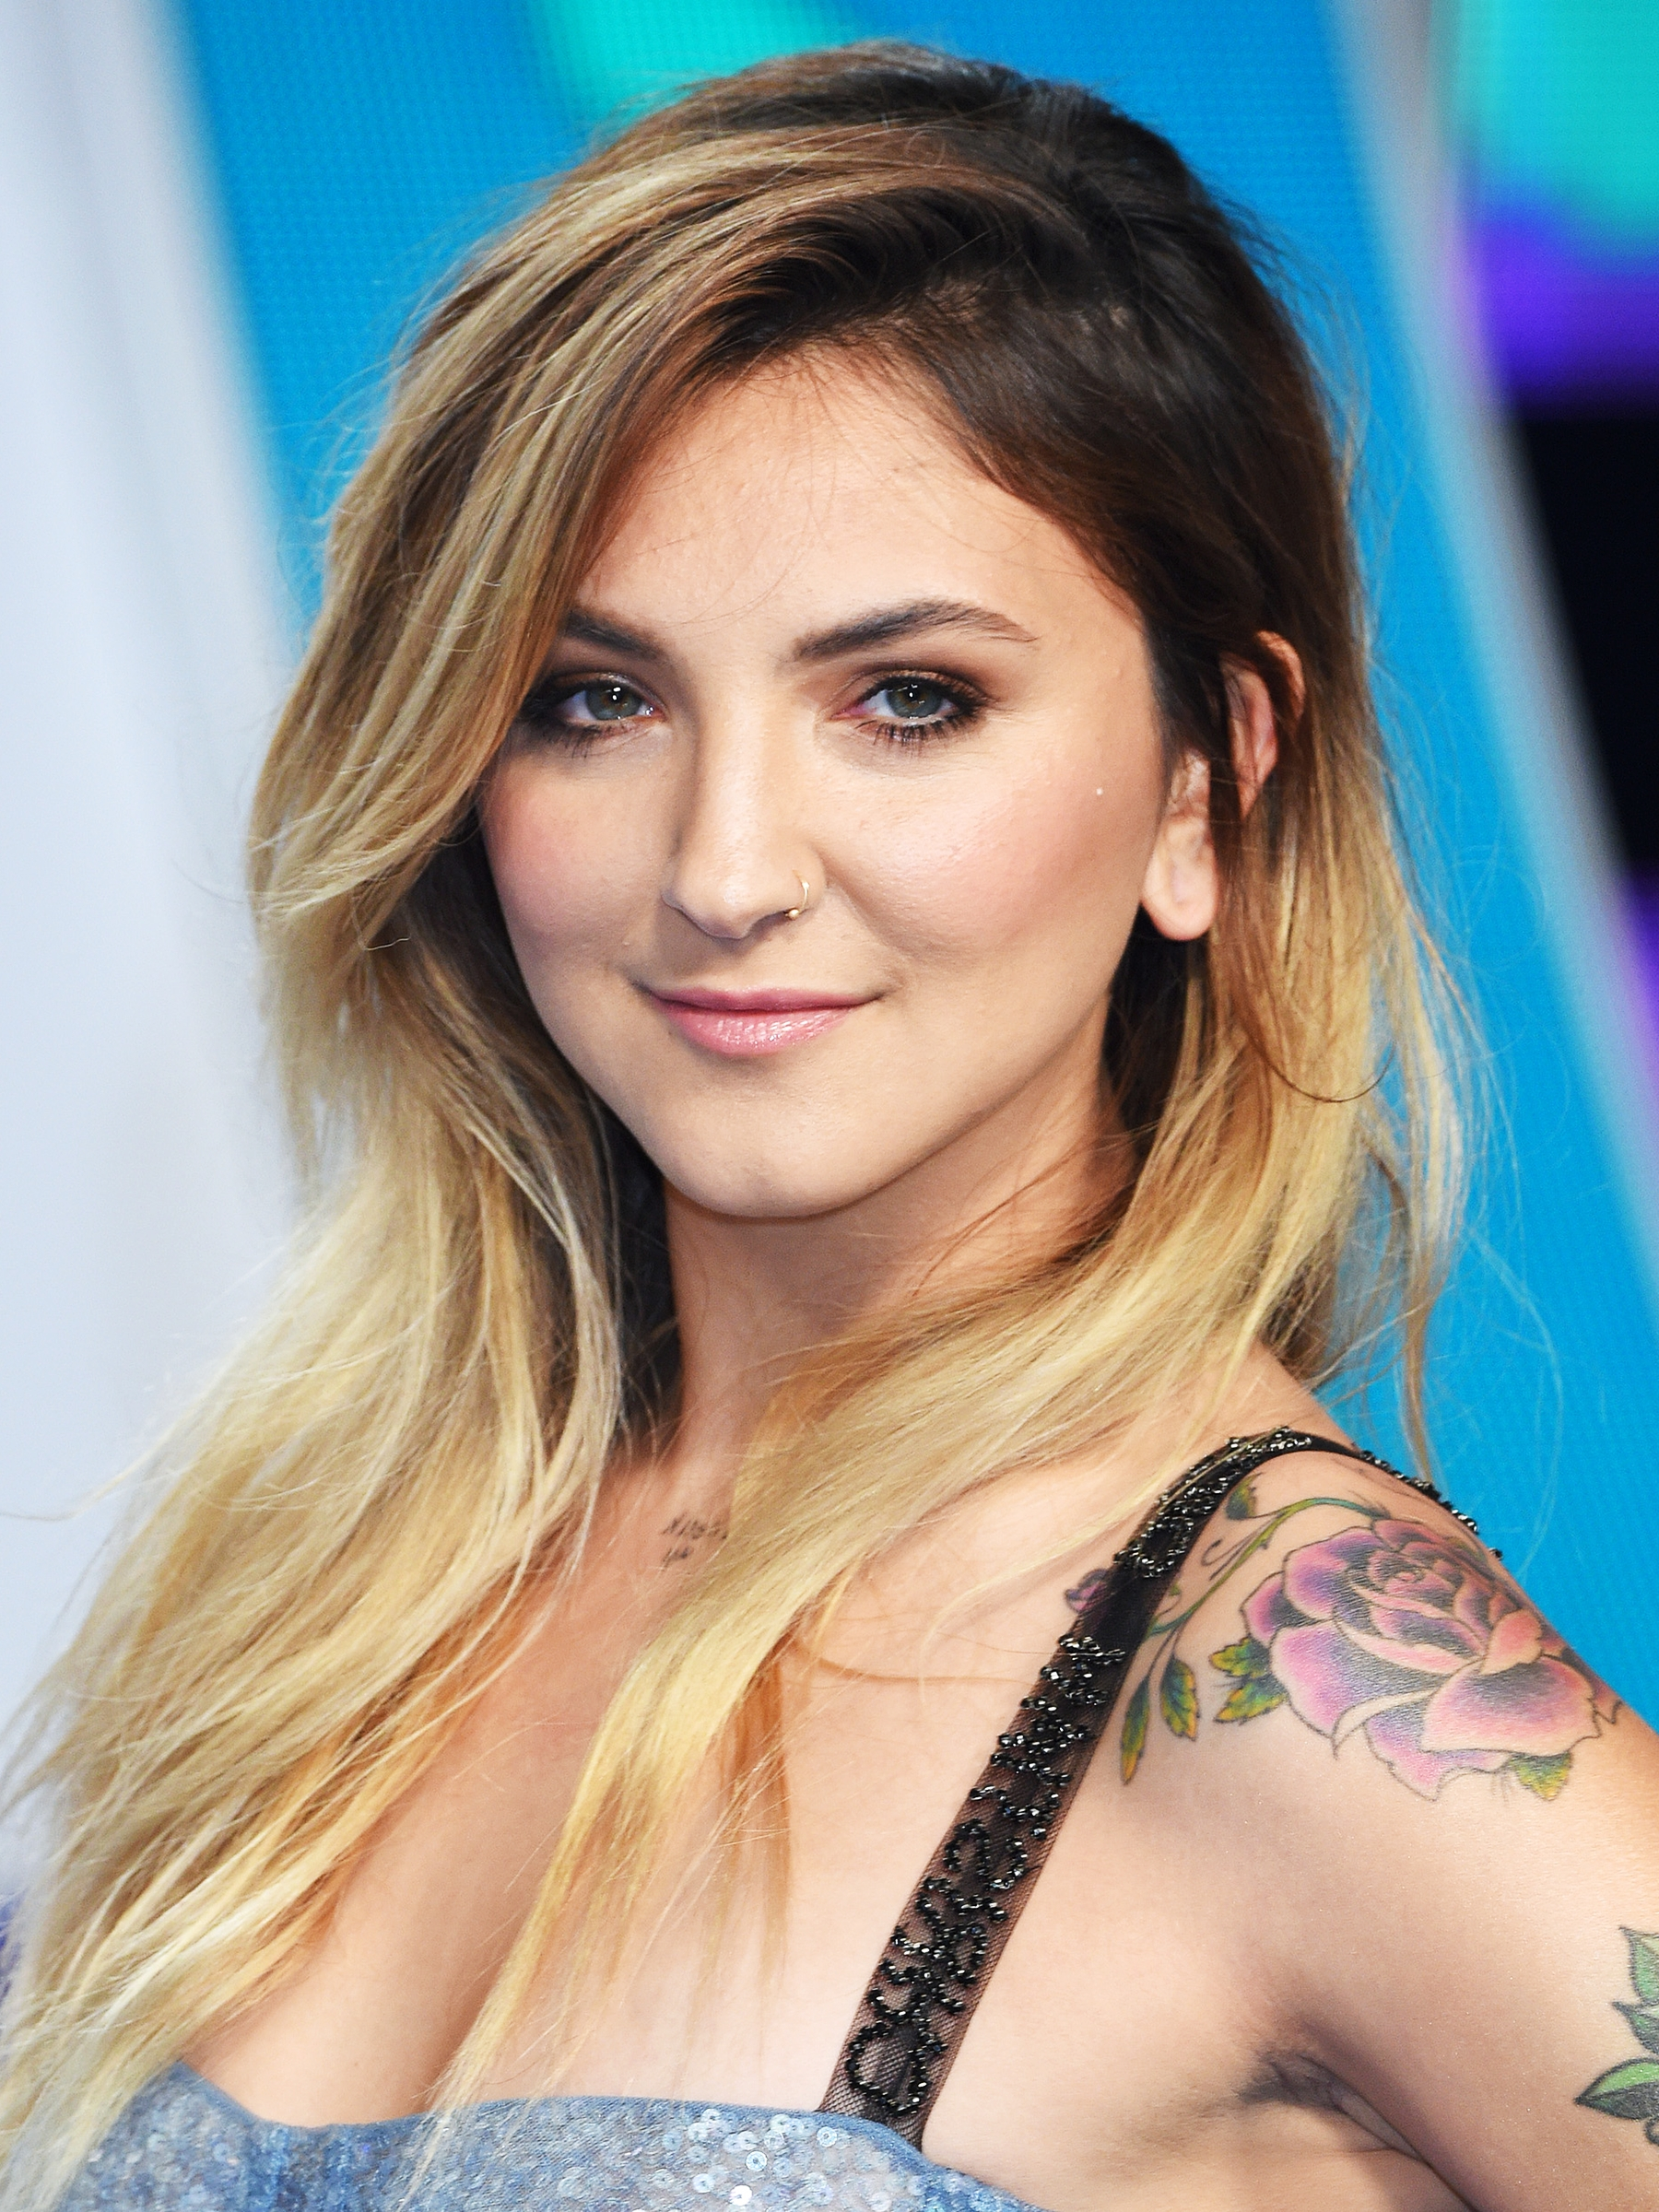 Current Sleek Blonde Hairstyles With Grown Out Roots For Blonde Hair Dark Roots Celebrity Hair Trend Photos (View 15 of 20)